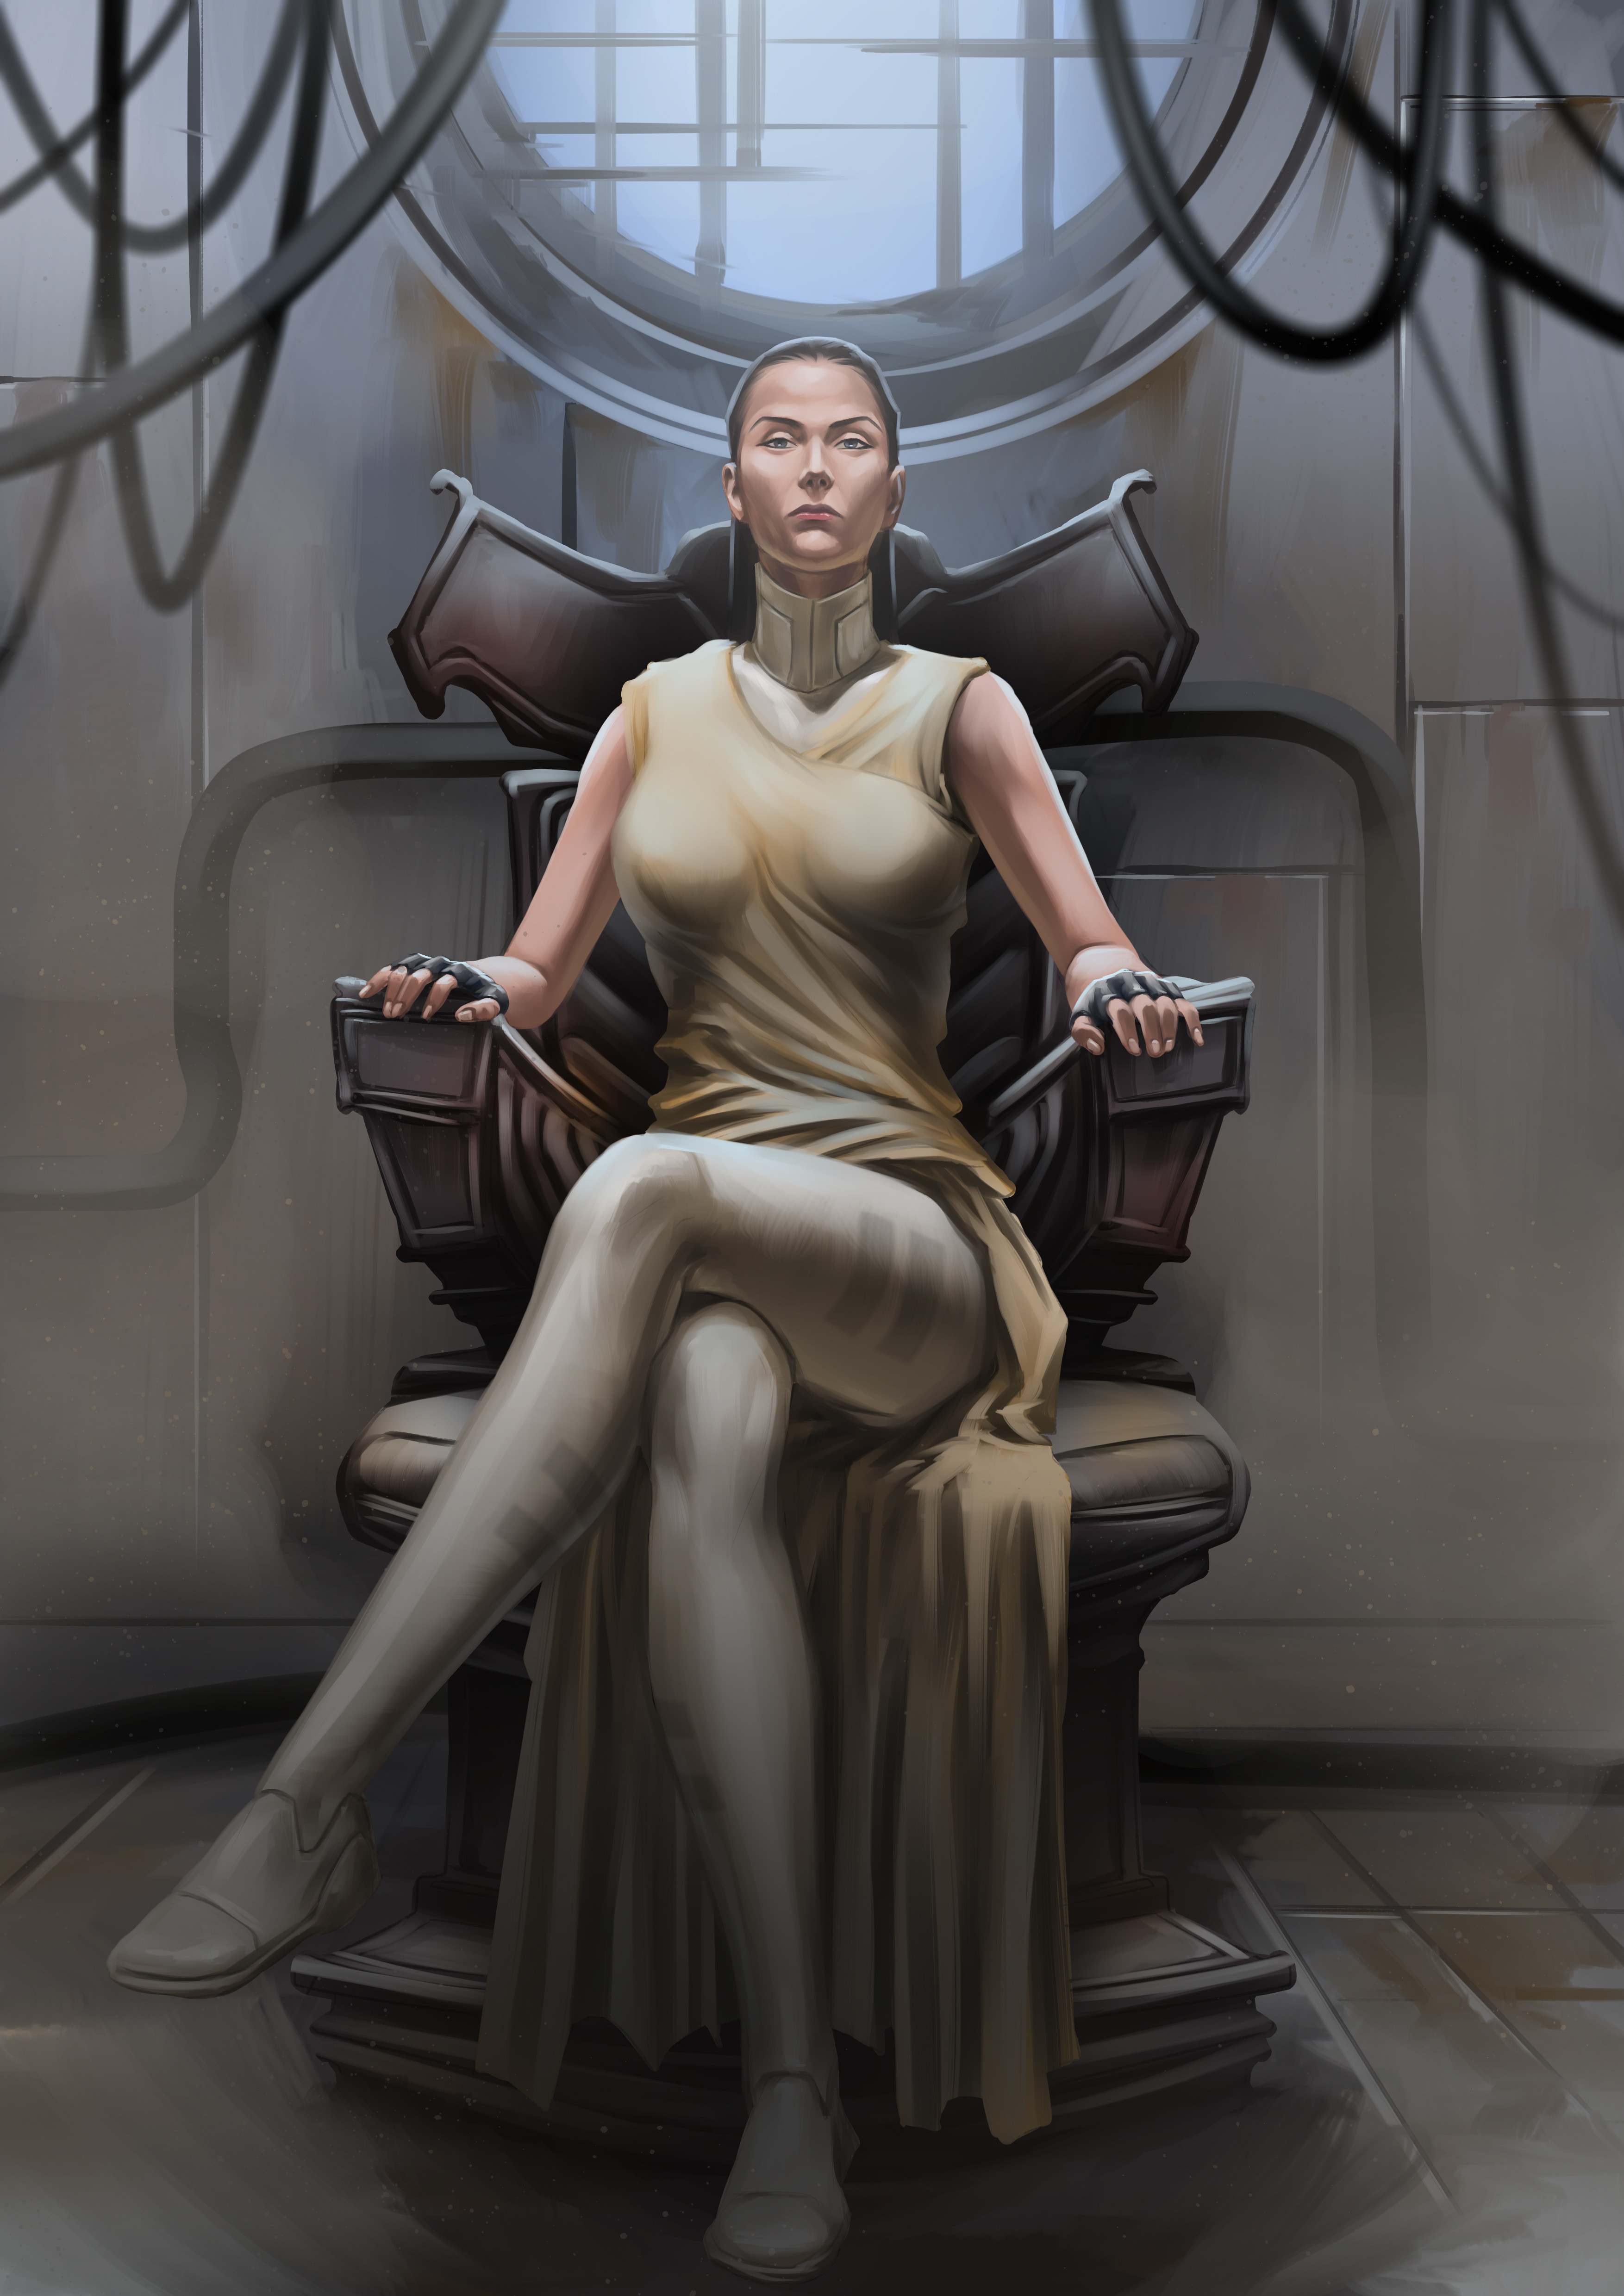 General 3508x4961 DumbOldSpider LLC legs legs crossed white dress yellow dress comic books comic art video game art women comics fictional character looking at viewer throne Throne Room game art concept art closed mouth blue eyes black gloves fingerless gloves dark hair black hair pointed toes white clothing sitting gloves yellow clothing video game girls artwork fictional characters room video games boobs digital painting digital art portrait display fan art video game characters dress bare shoulders wires ArtStation frontal view